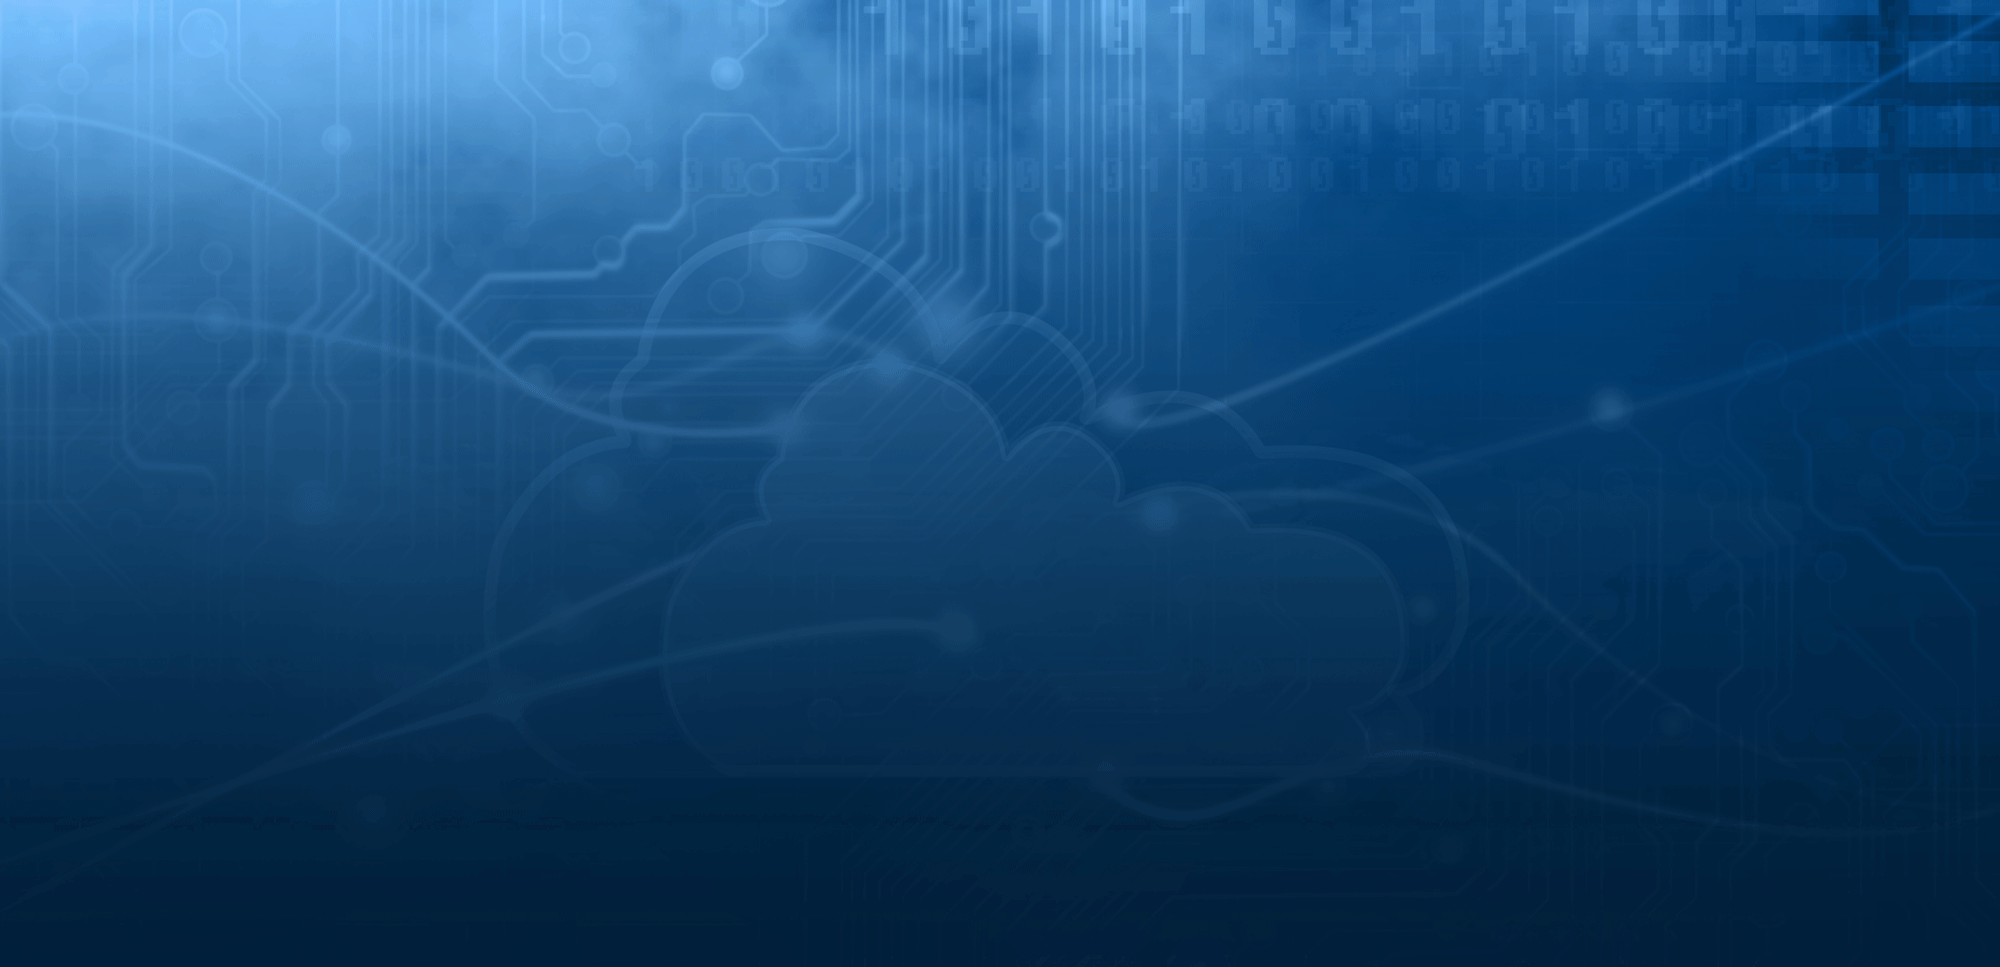 Cloud computing database banner